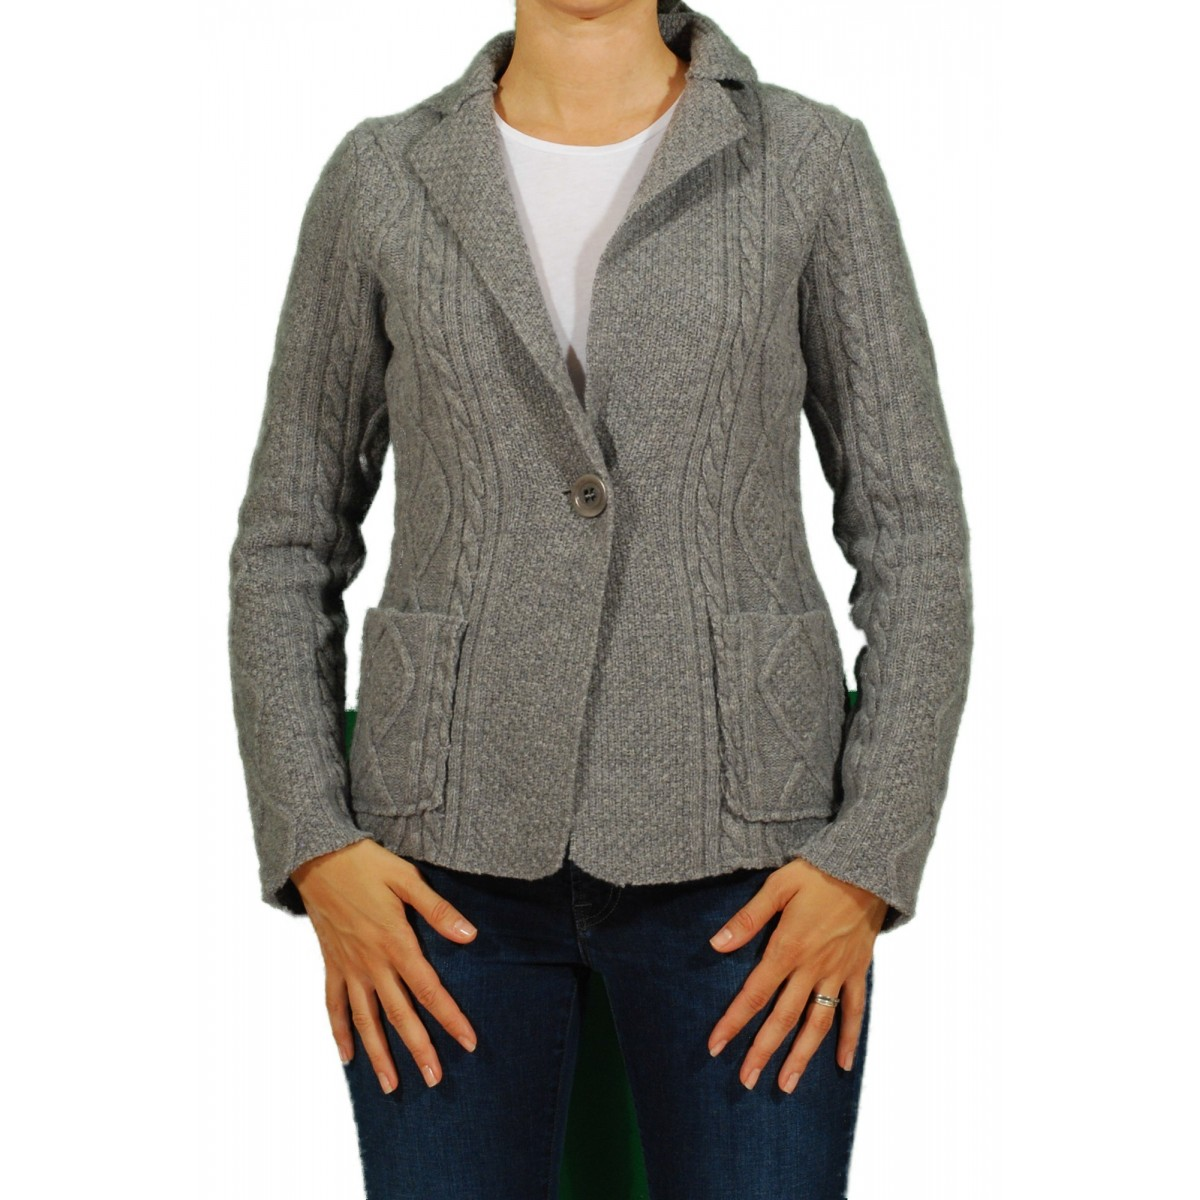 Jacket Woman Kangra - 5708/57 32 Jacket Jacket Woman Lana